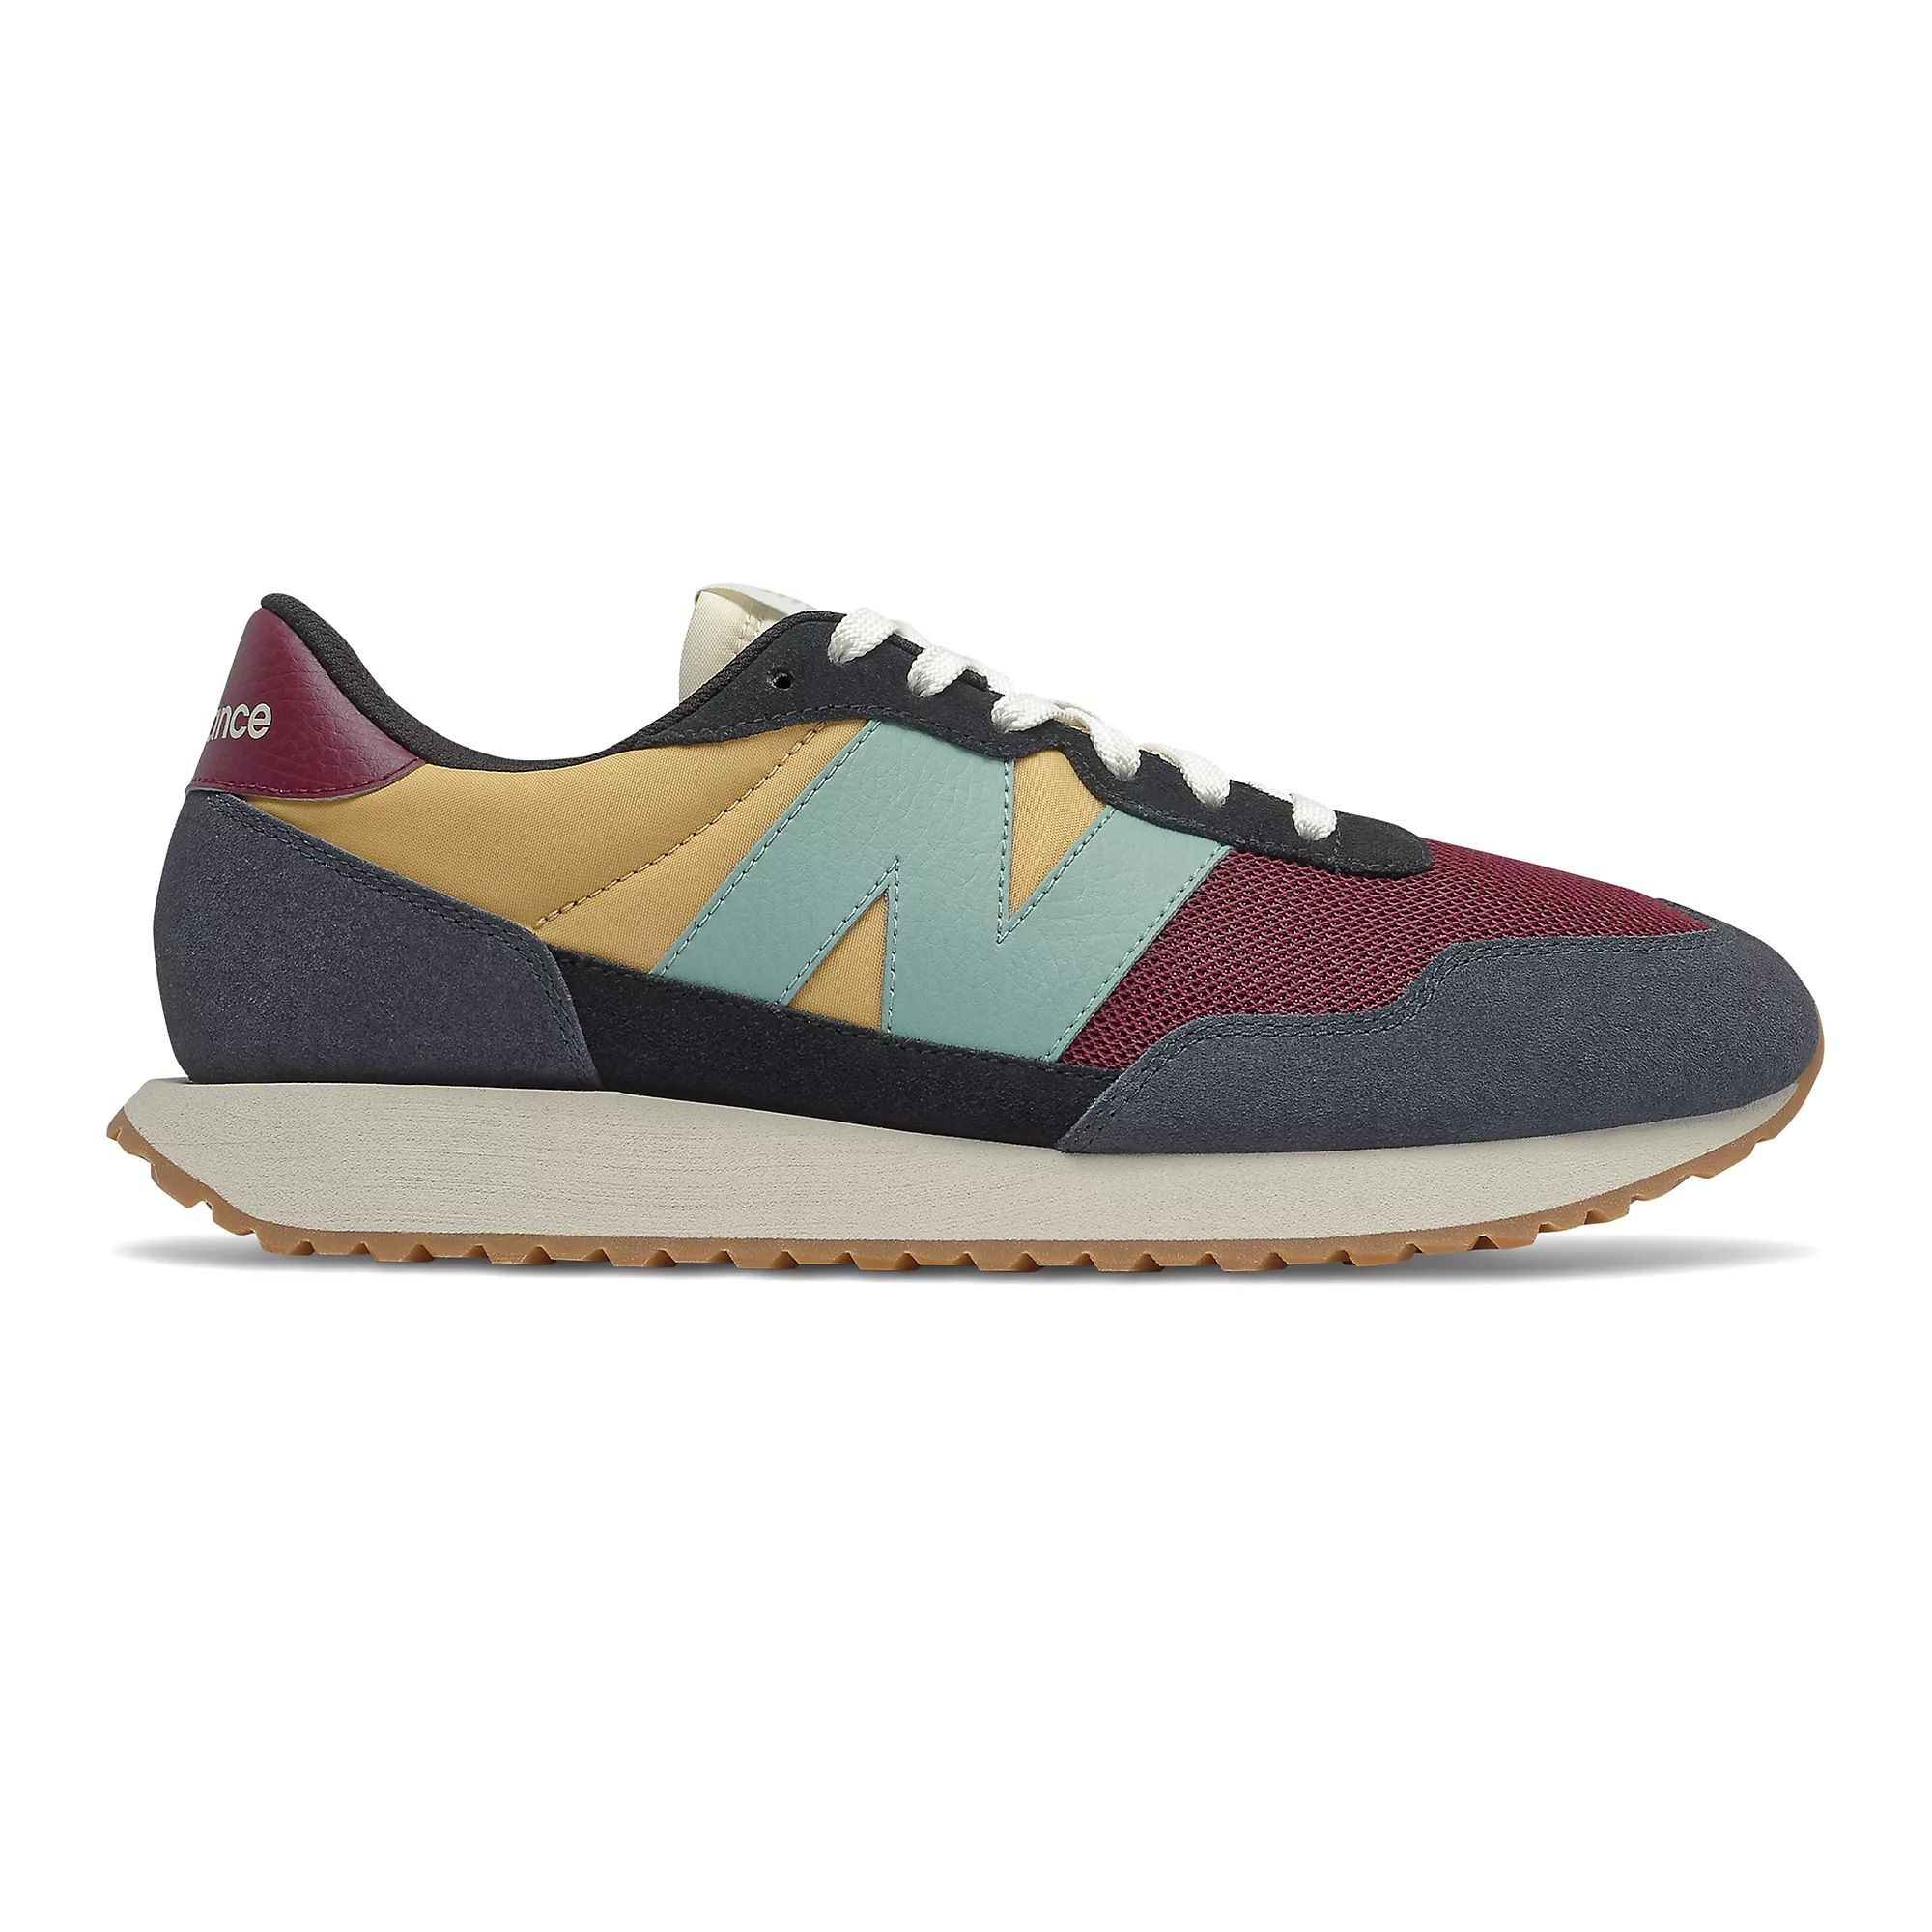 New Balance Men's 237 in Outerspace/Garnet